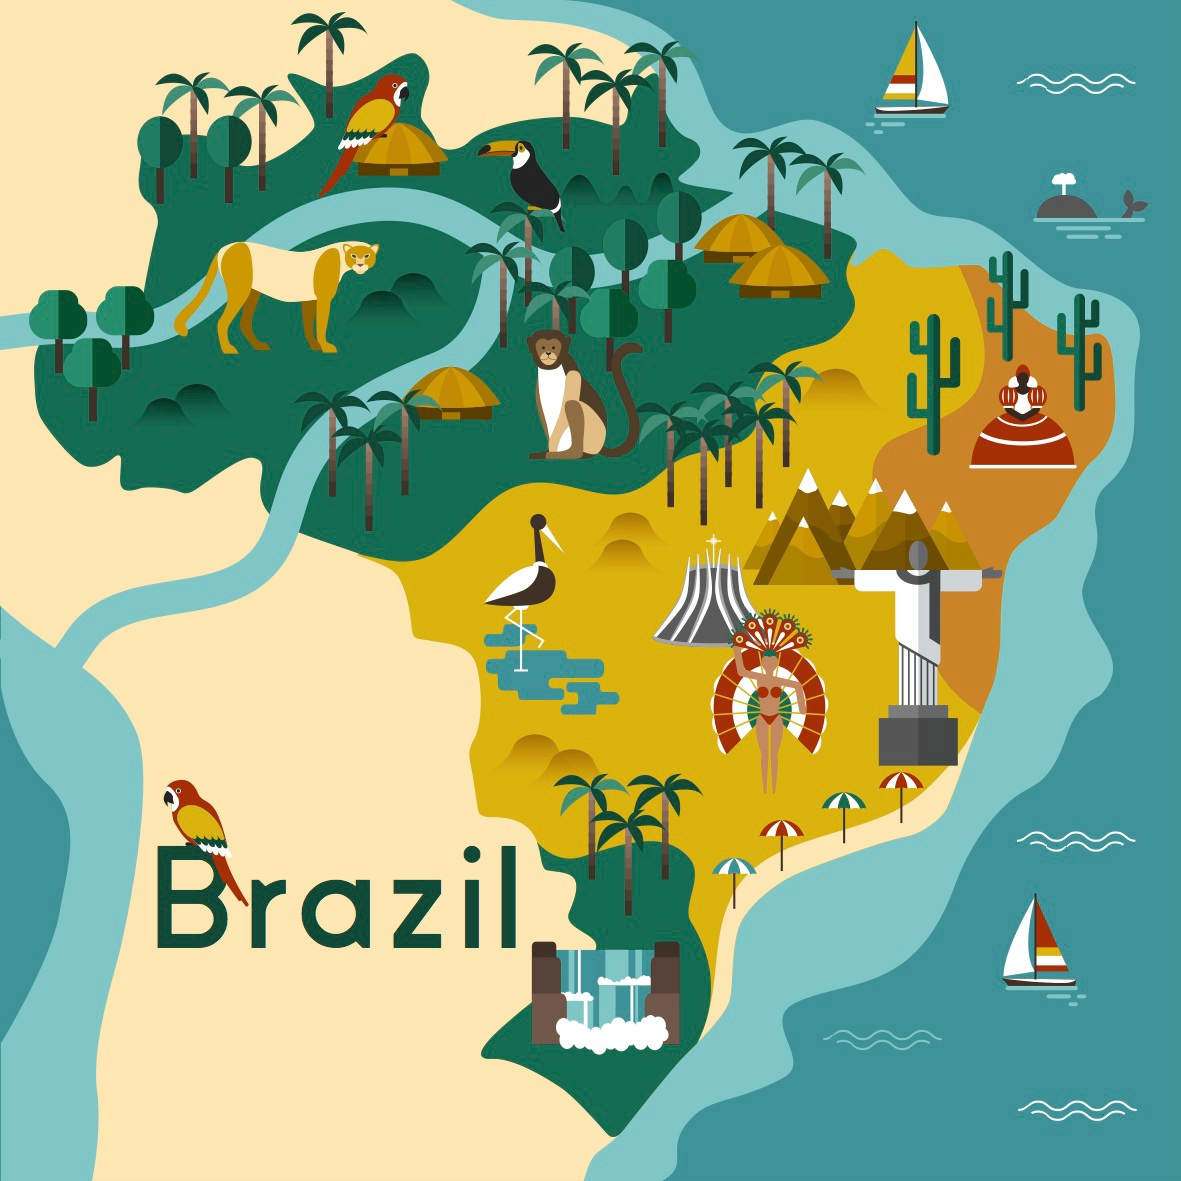 Brazil map on Behance